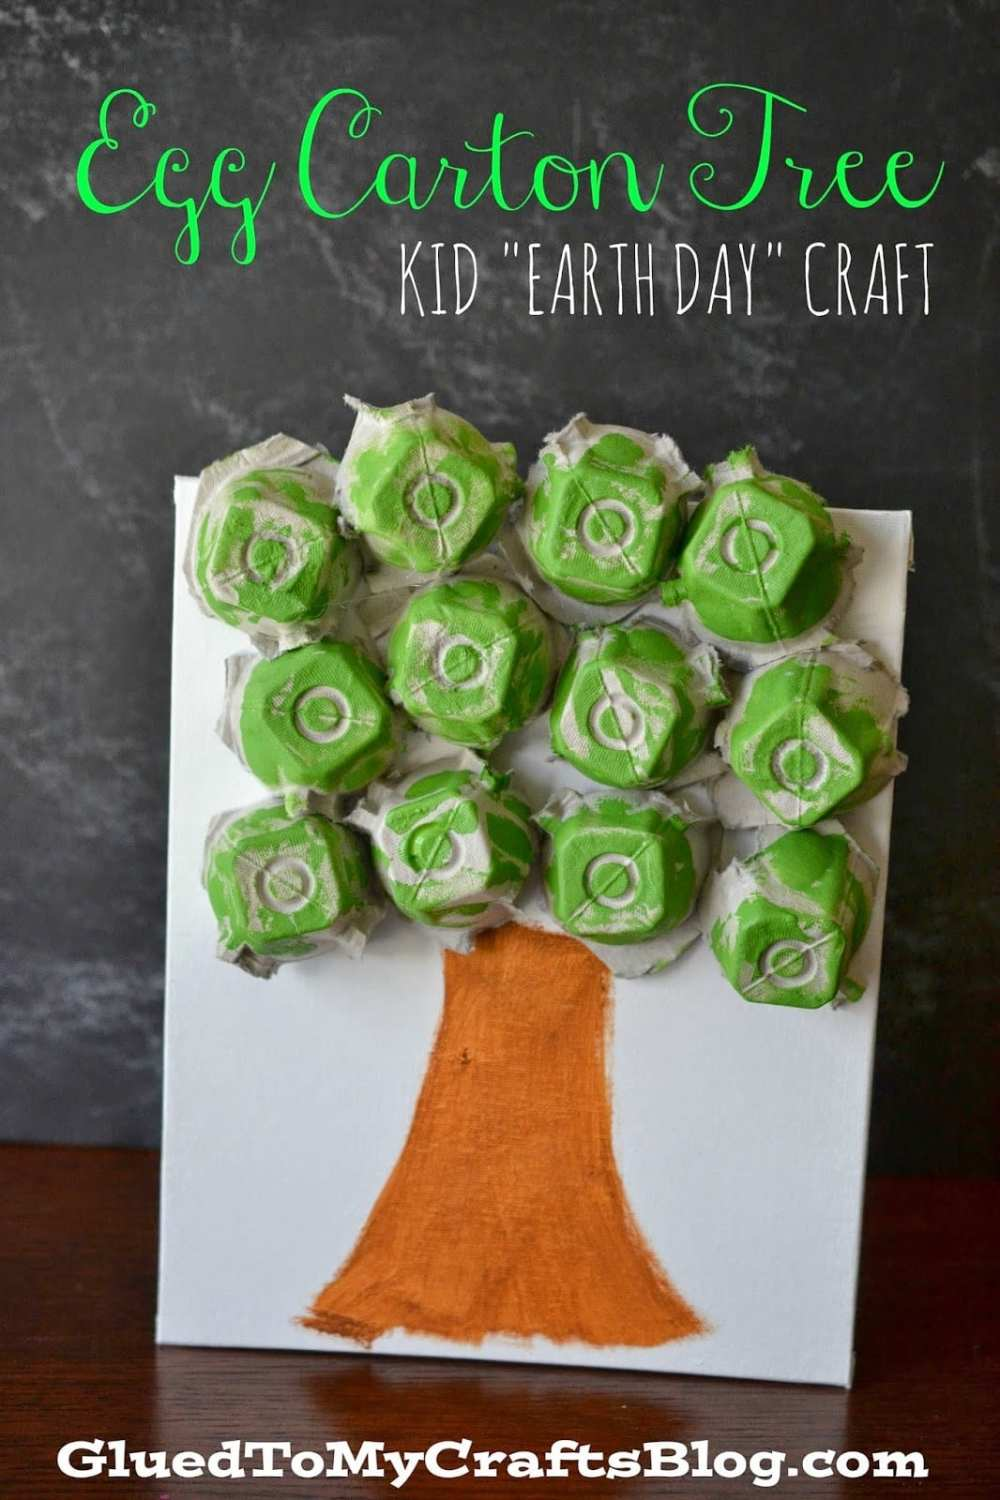 medium resolution of 30 Earth Day Crafts With Recycled Materials - WeAreTeachers